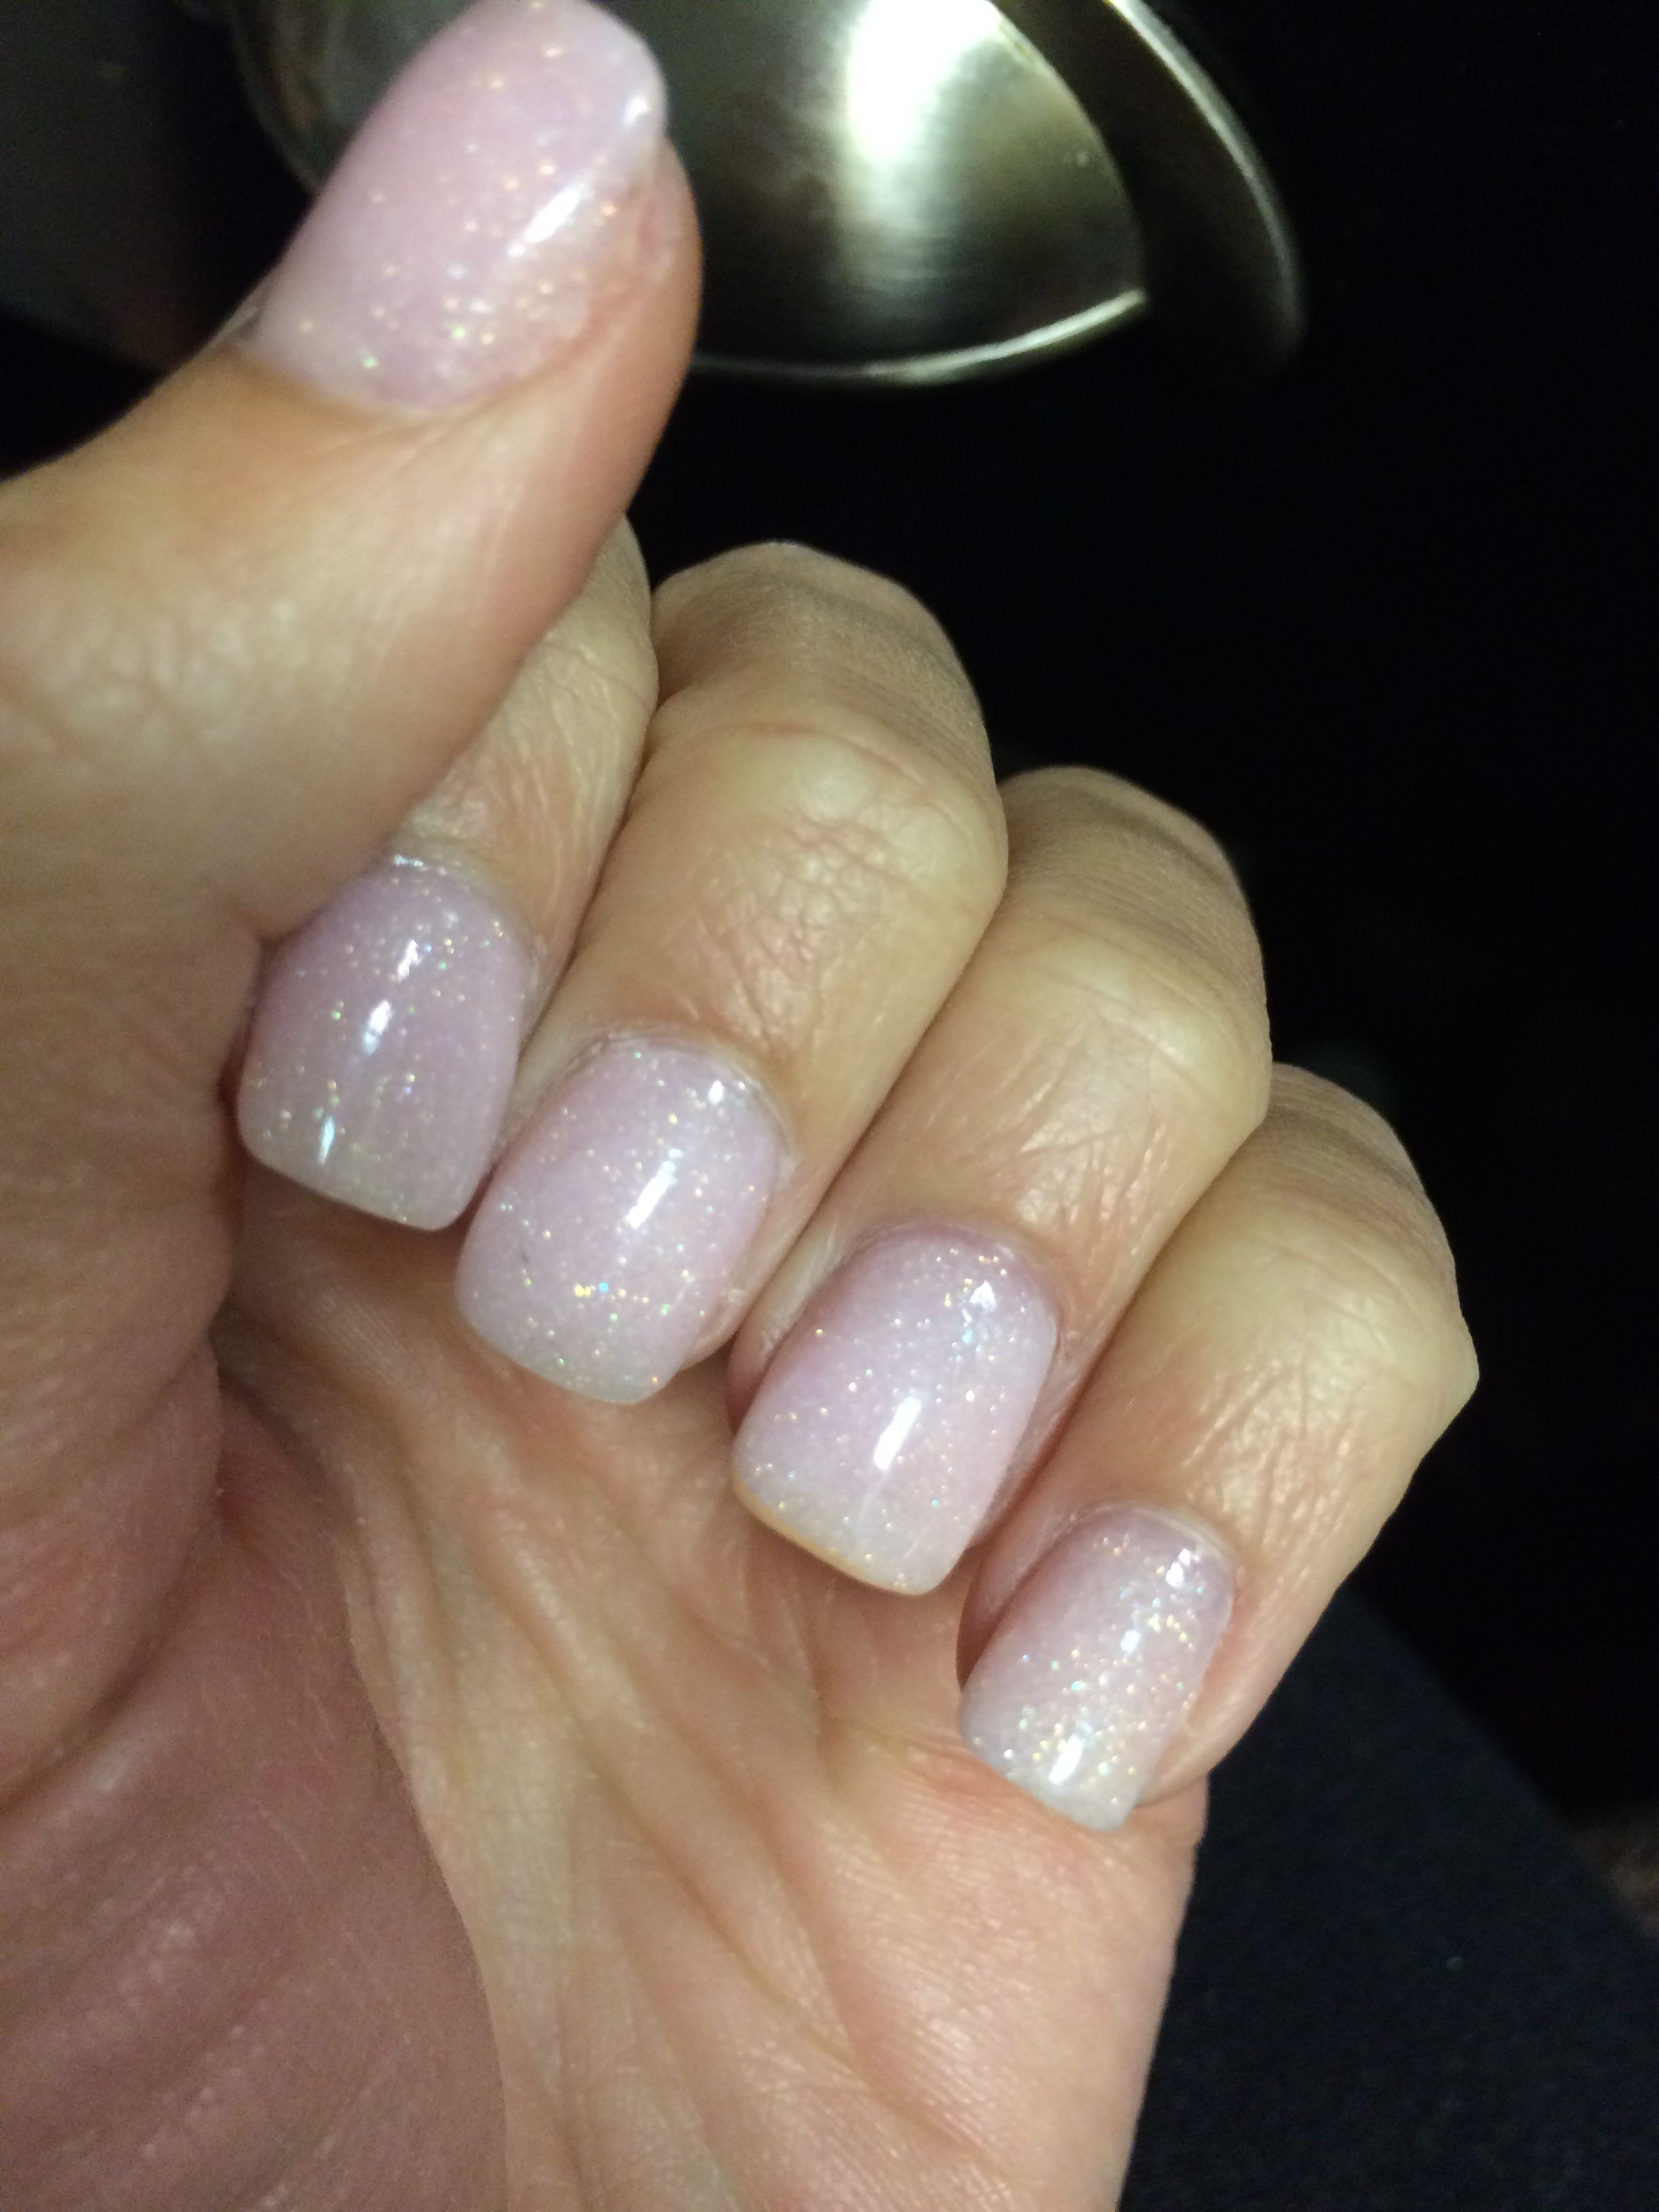 Sns Dip Nails In The Color L7 Nails Nails Dipped